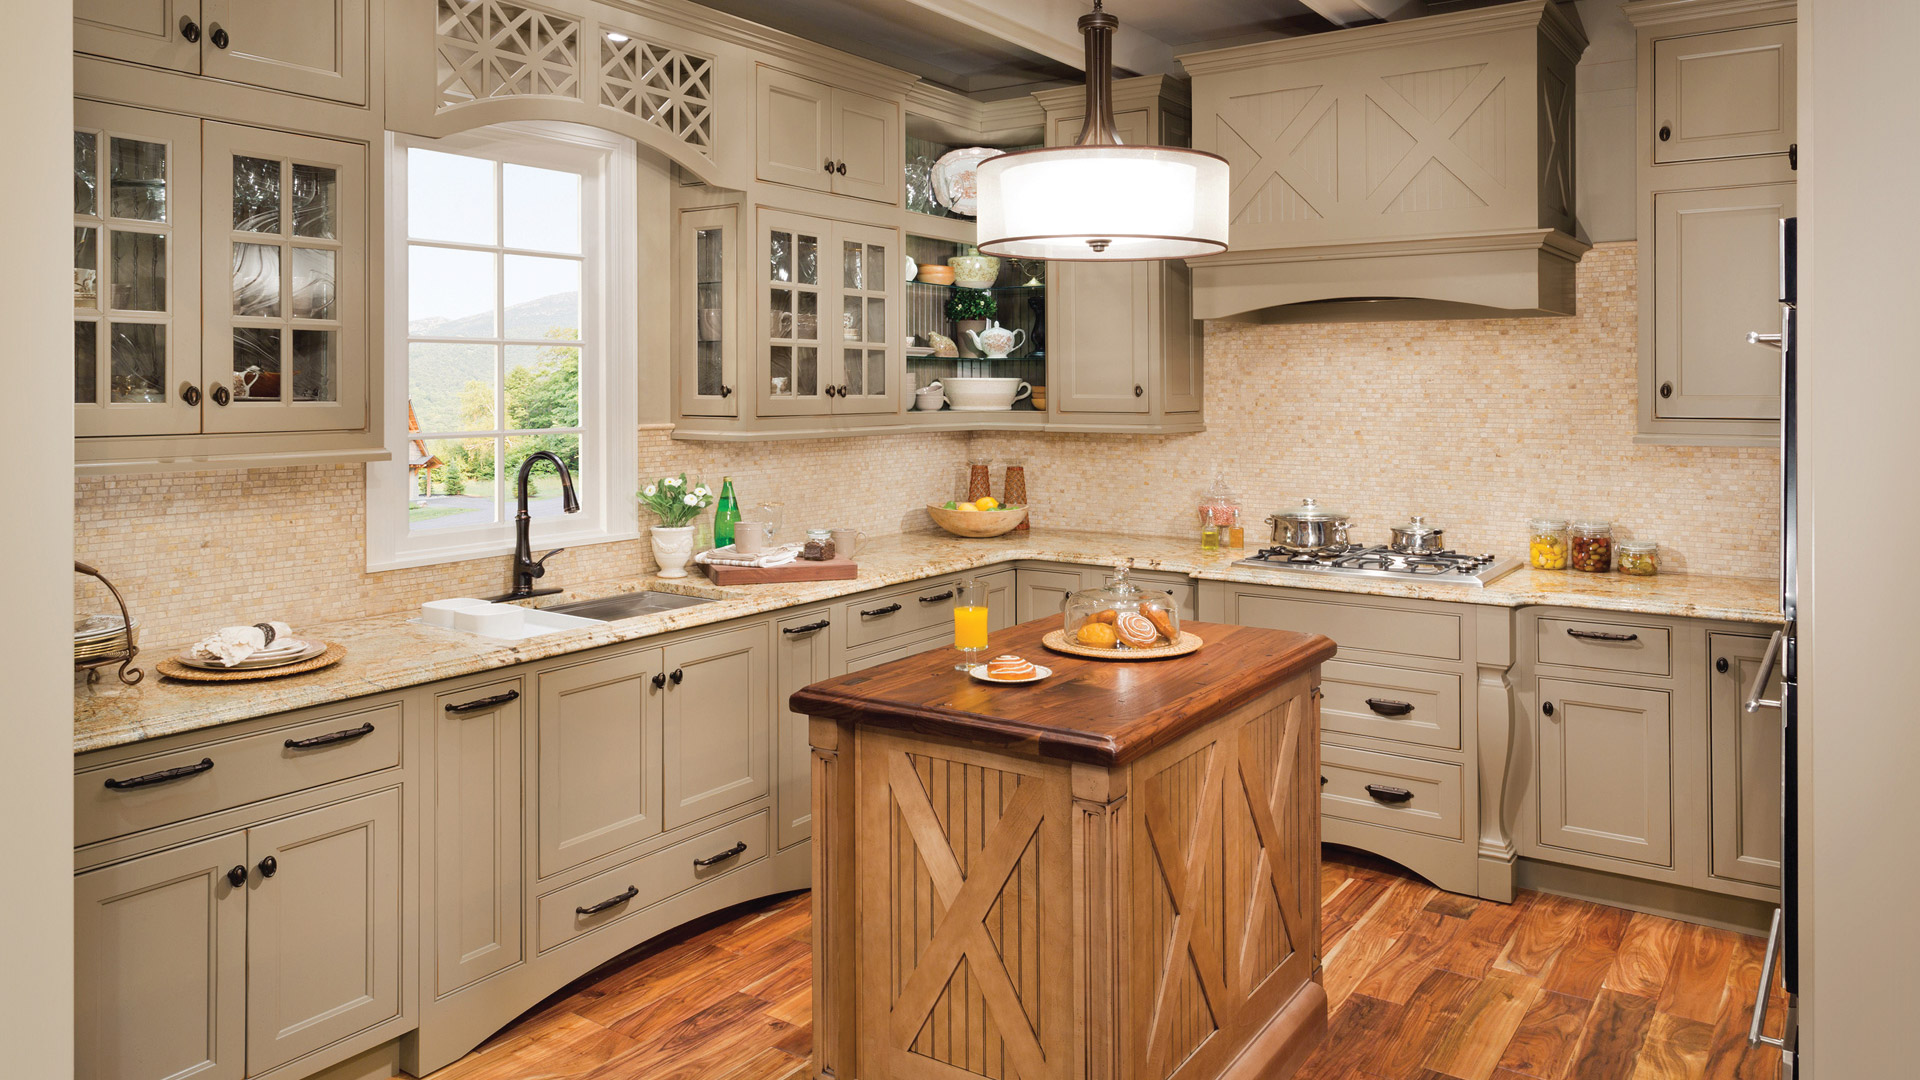 Photo Of Kitchen Cabinets Nextdaycabinets Wholesale Distributing For Contractors